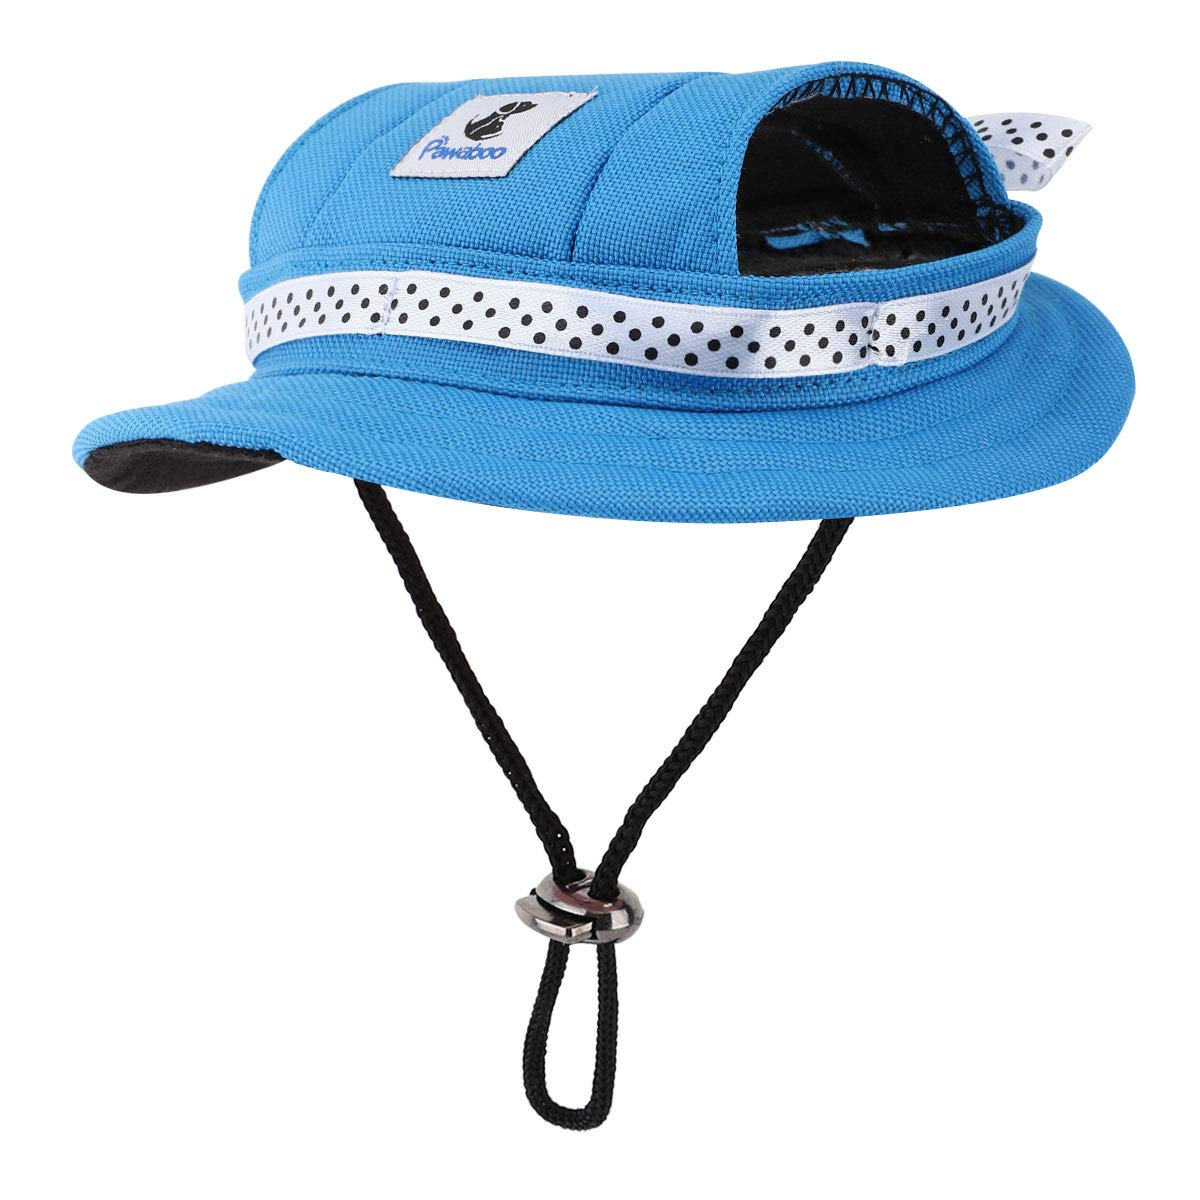 Medium//Blue Round Brim Adjustable Fashion Visor Dog Hat Pawaboo Dog Princess Cap Premium Oxford Fabric Outdoor Sun Protection Sunbonnet Outfit Pet Cap with Ear Holes /& Chin Strap for Puppy Dogs